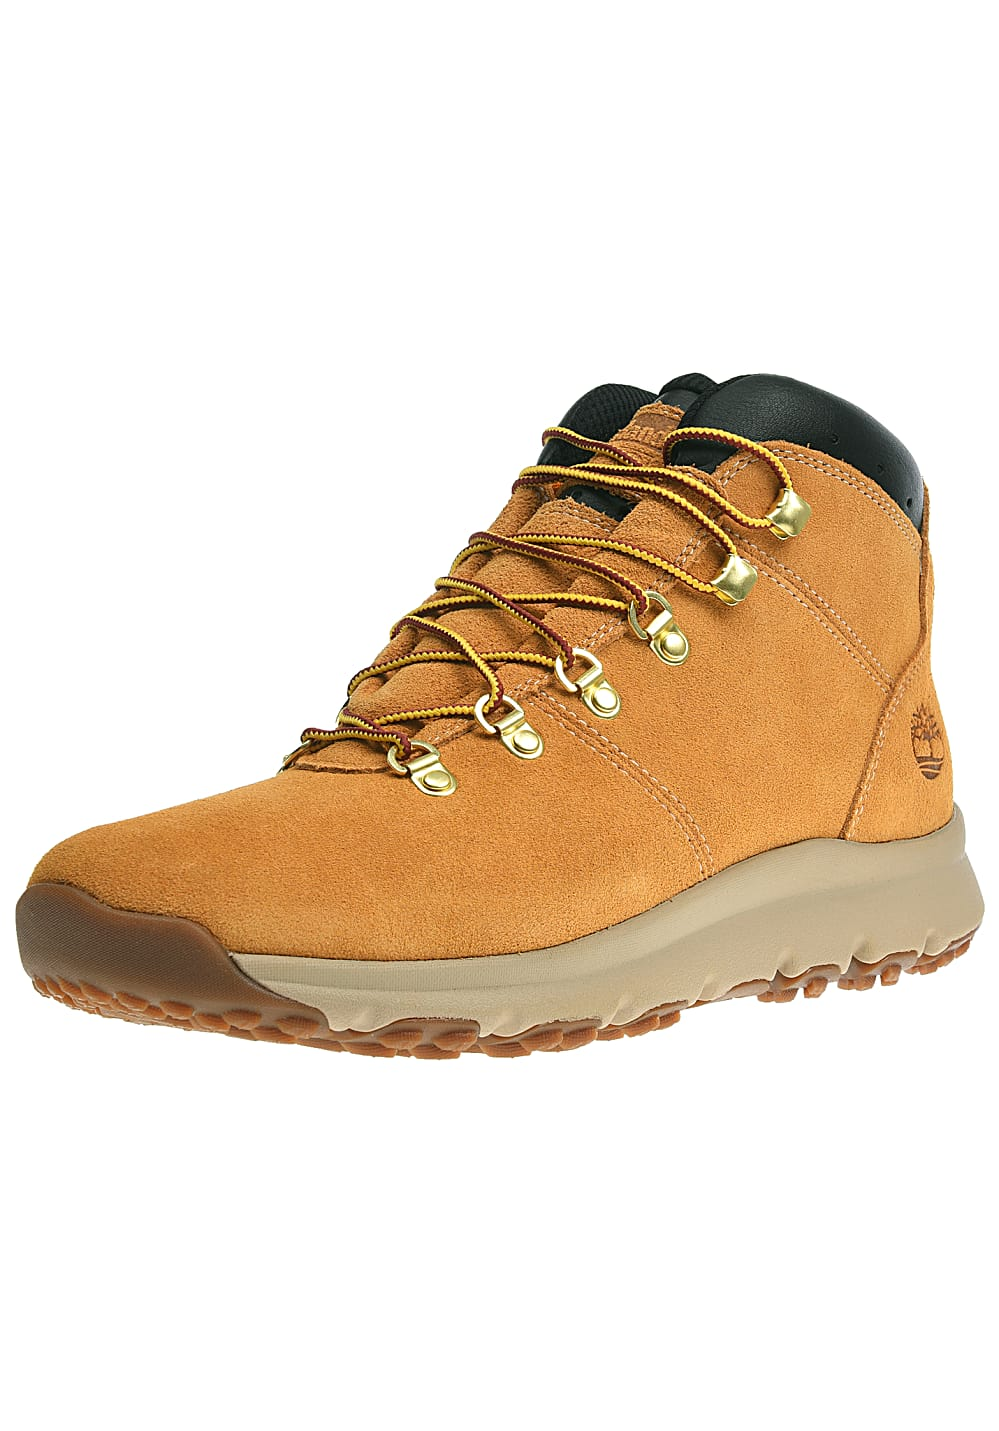 Timberland World hiker boots in brown